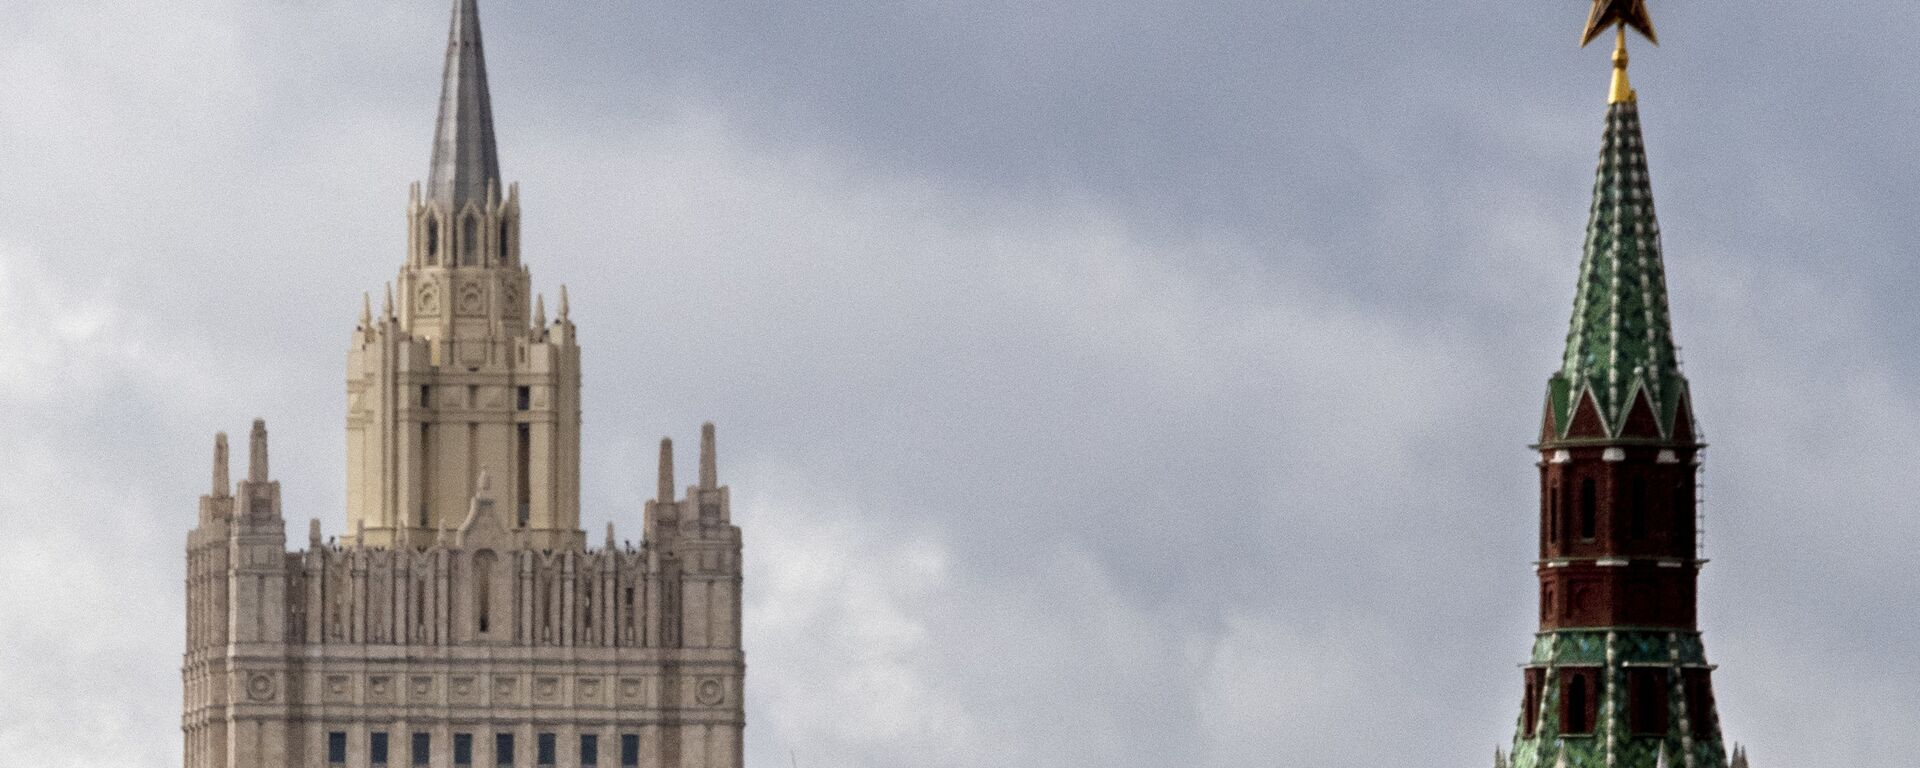 A man walks in front of a tower of the Kremlin and the Russian Foreign Ministry building in central Moscow on 10 September 2020. - Sputnik International, 1920, 02.06.2021